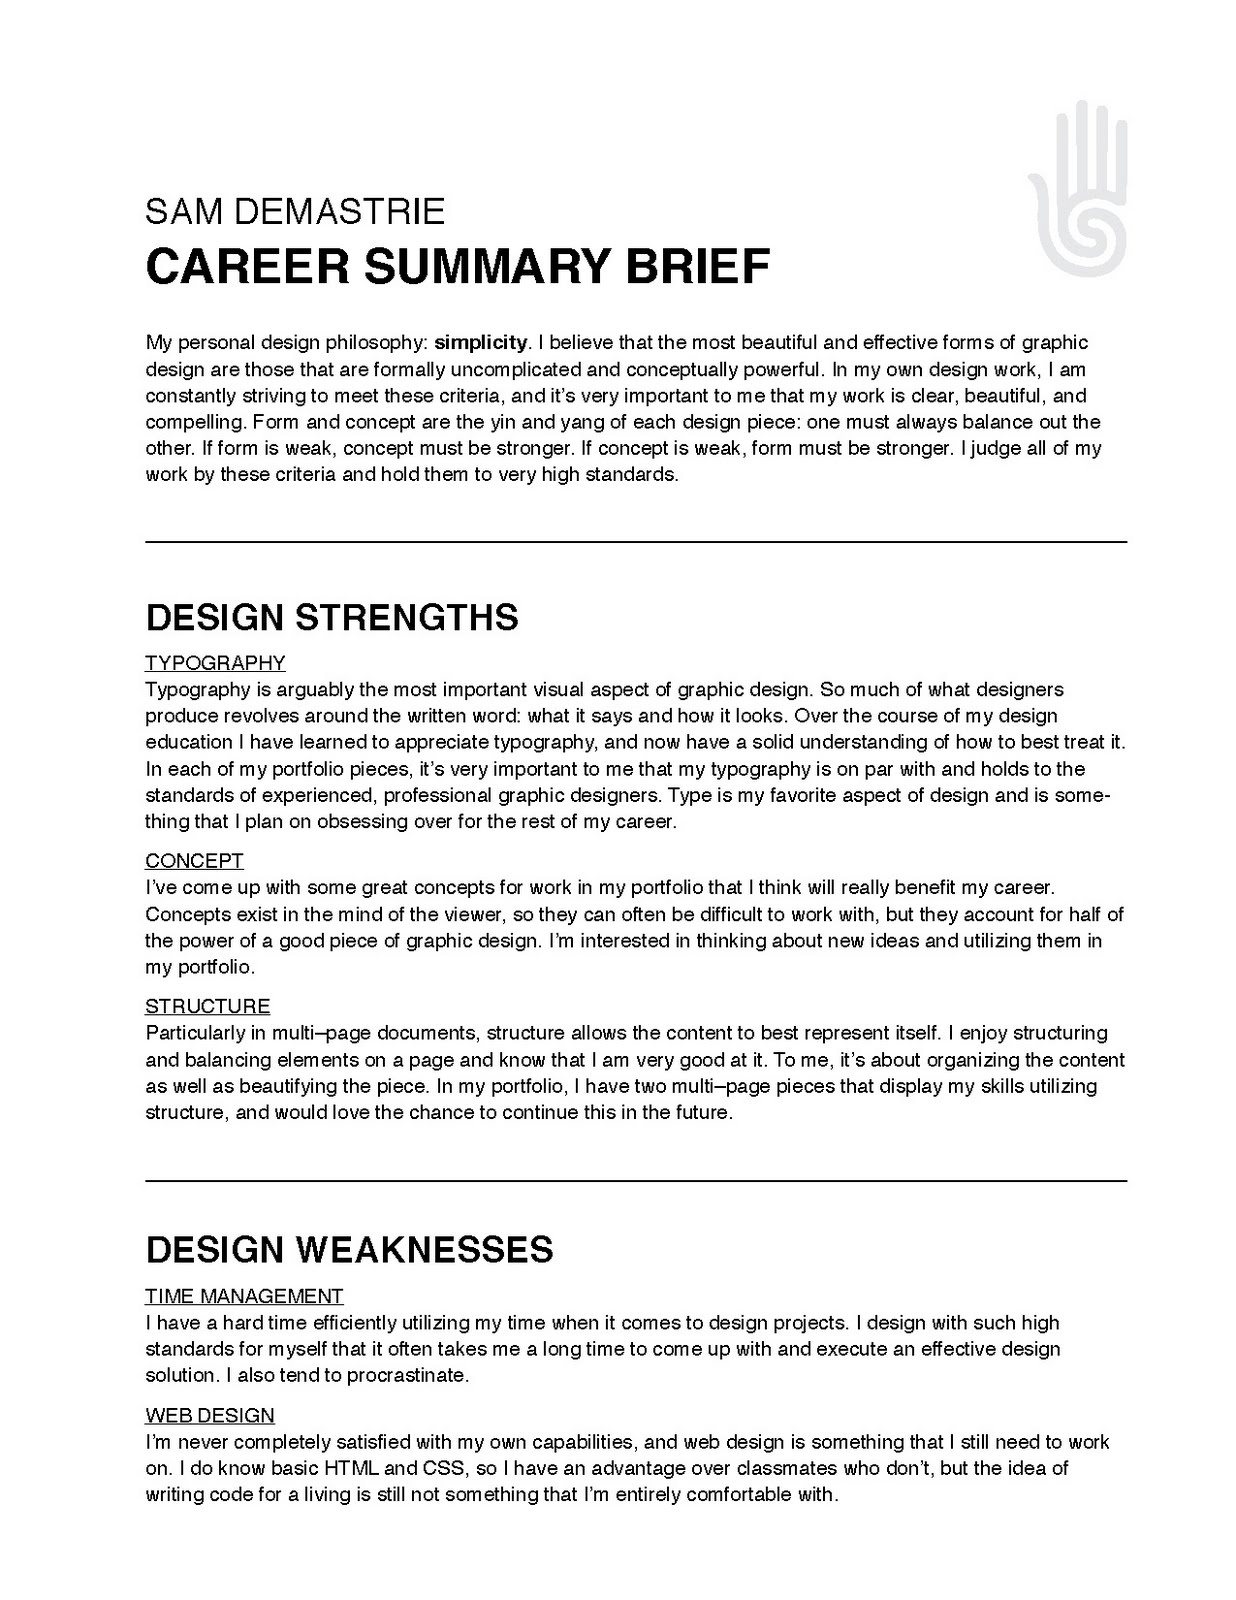 how to write a resume summary brief cover letter examples and how to write a resume summary brief step 6 your summary of qualifications resume career